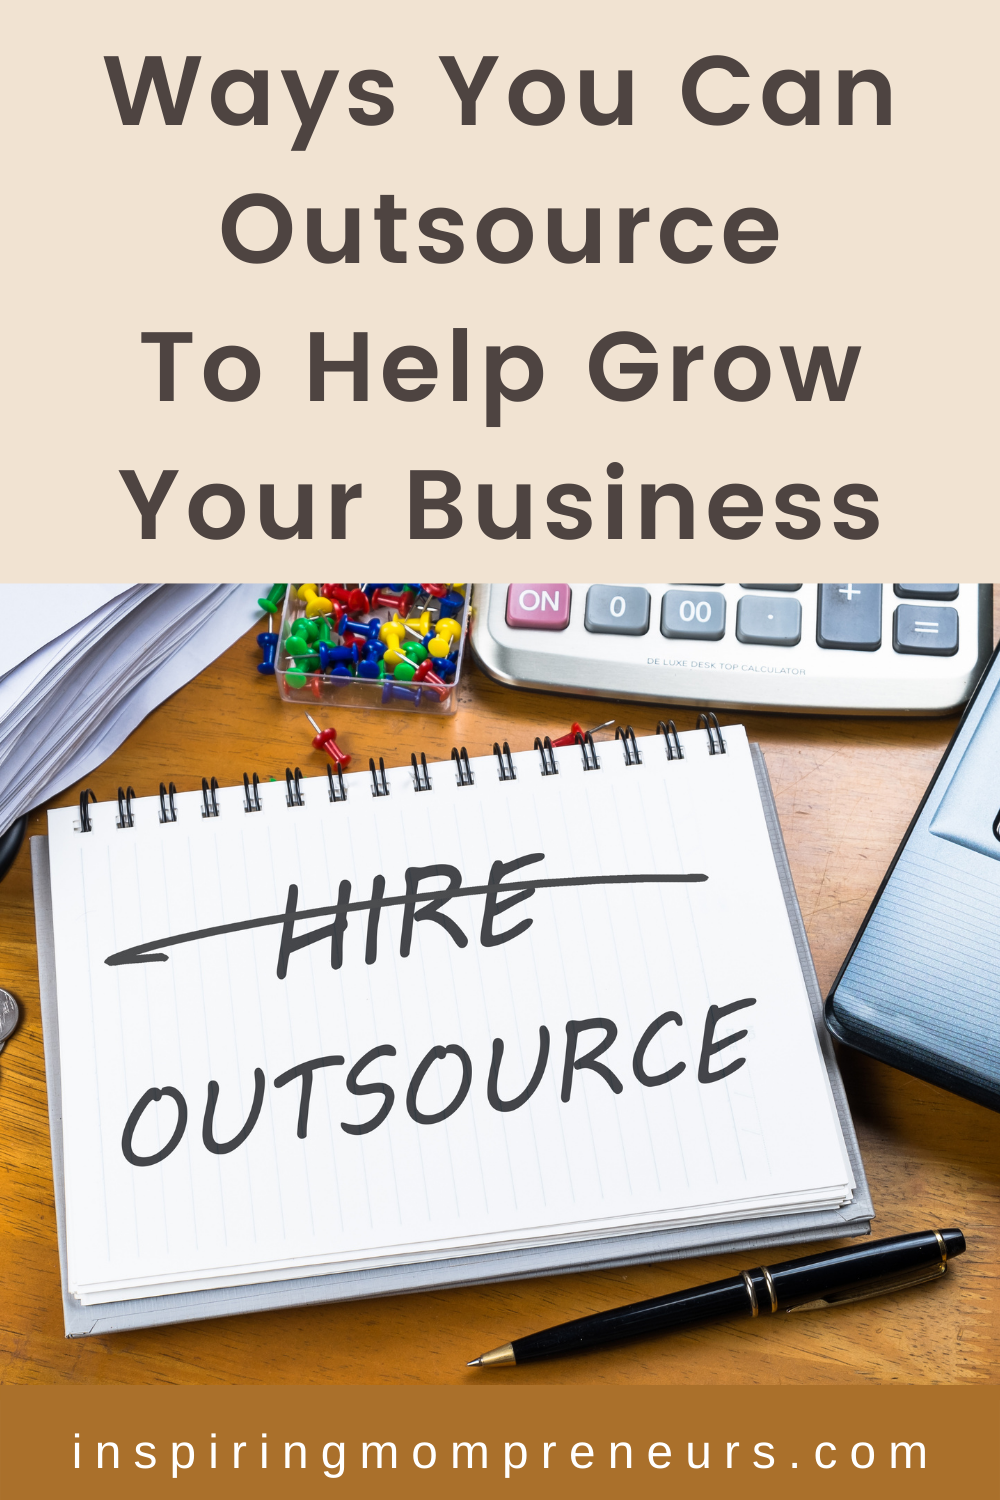 If you're looking for ways that outsourcing can boost your business, take a look at some of the following ideas and see how you can grow your business.